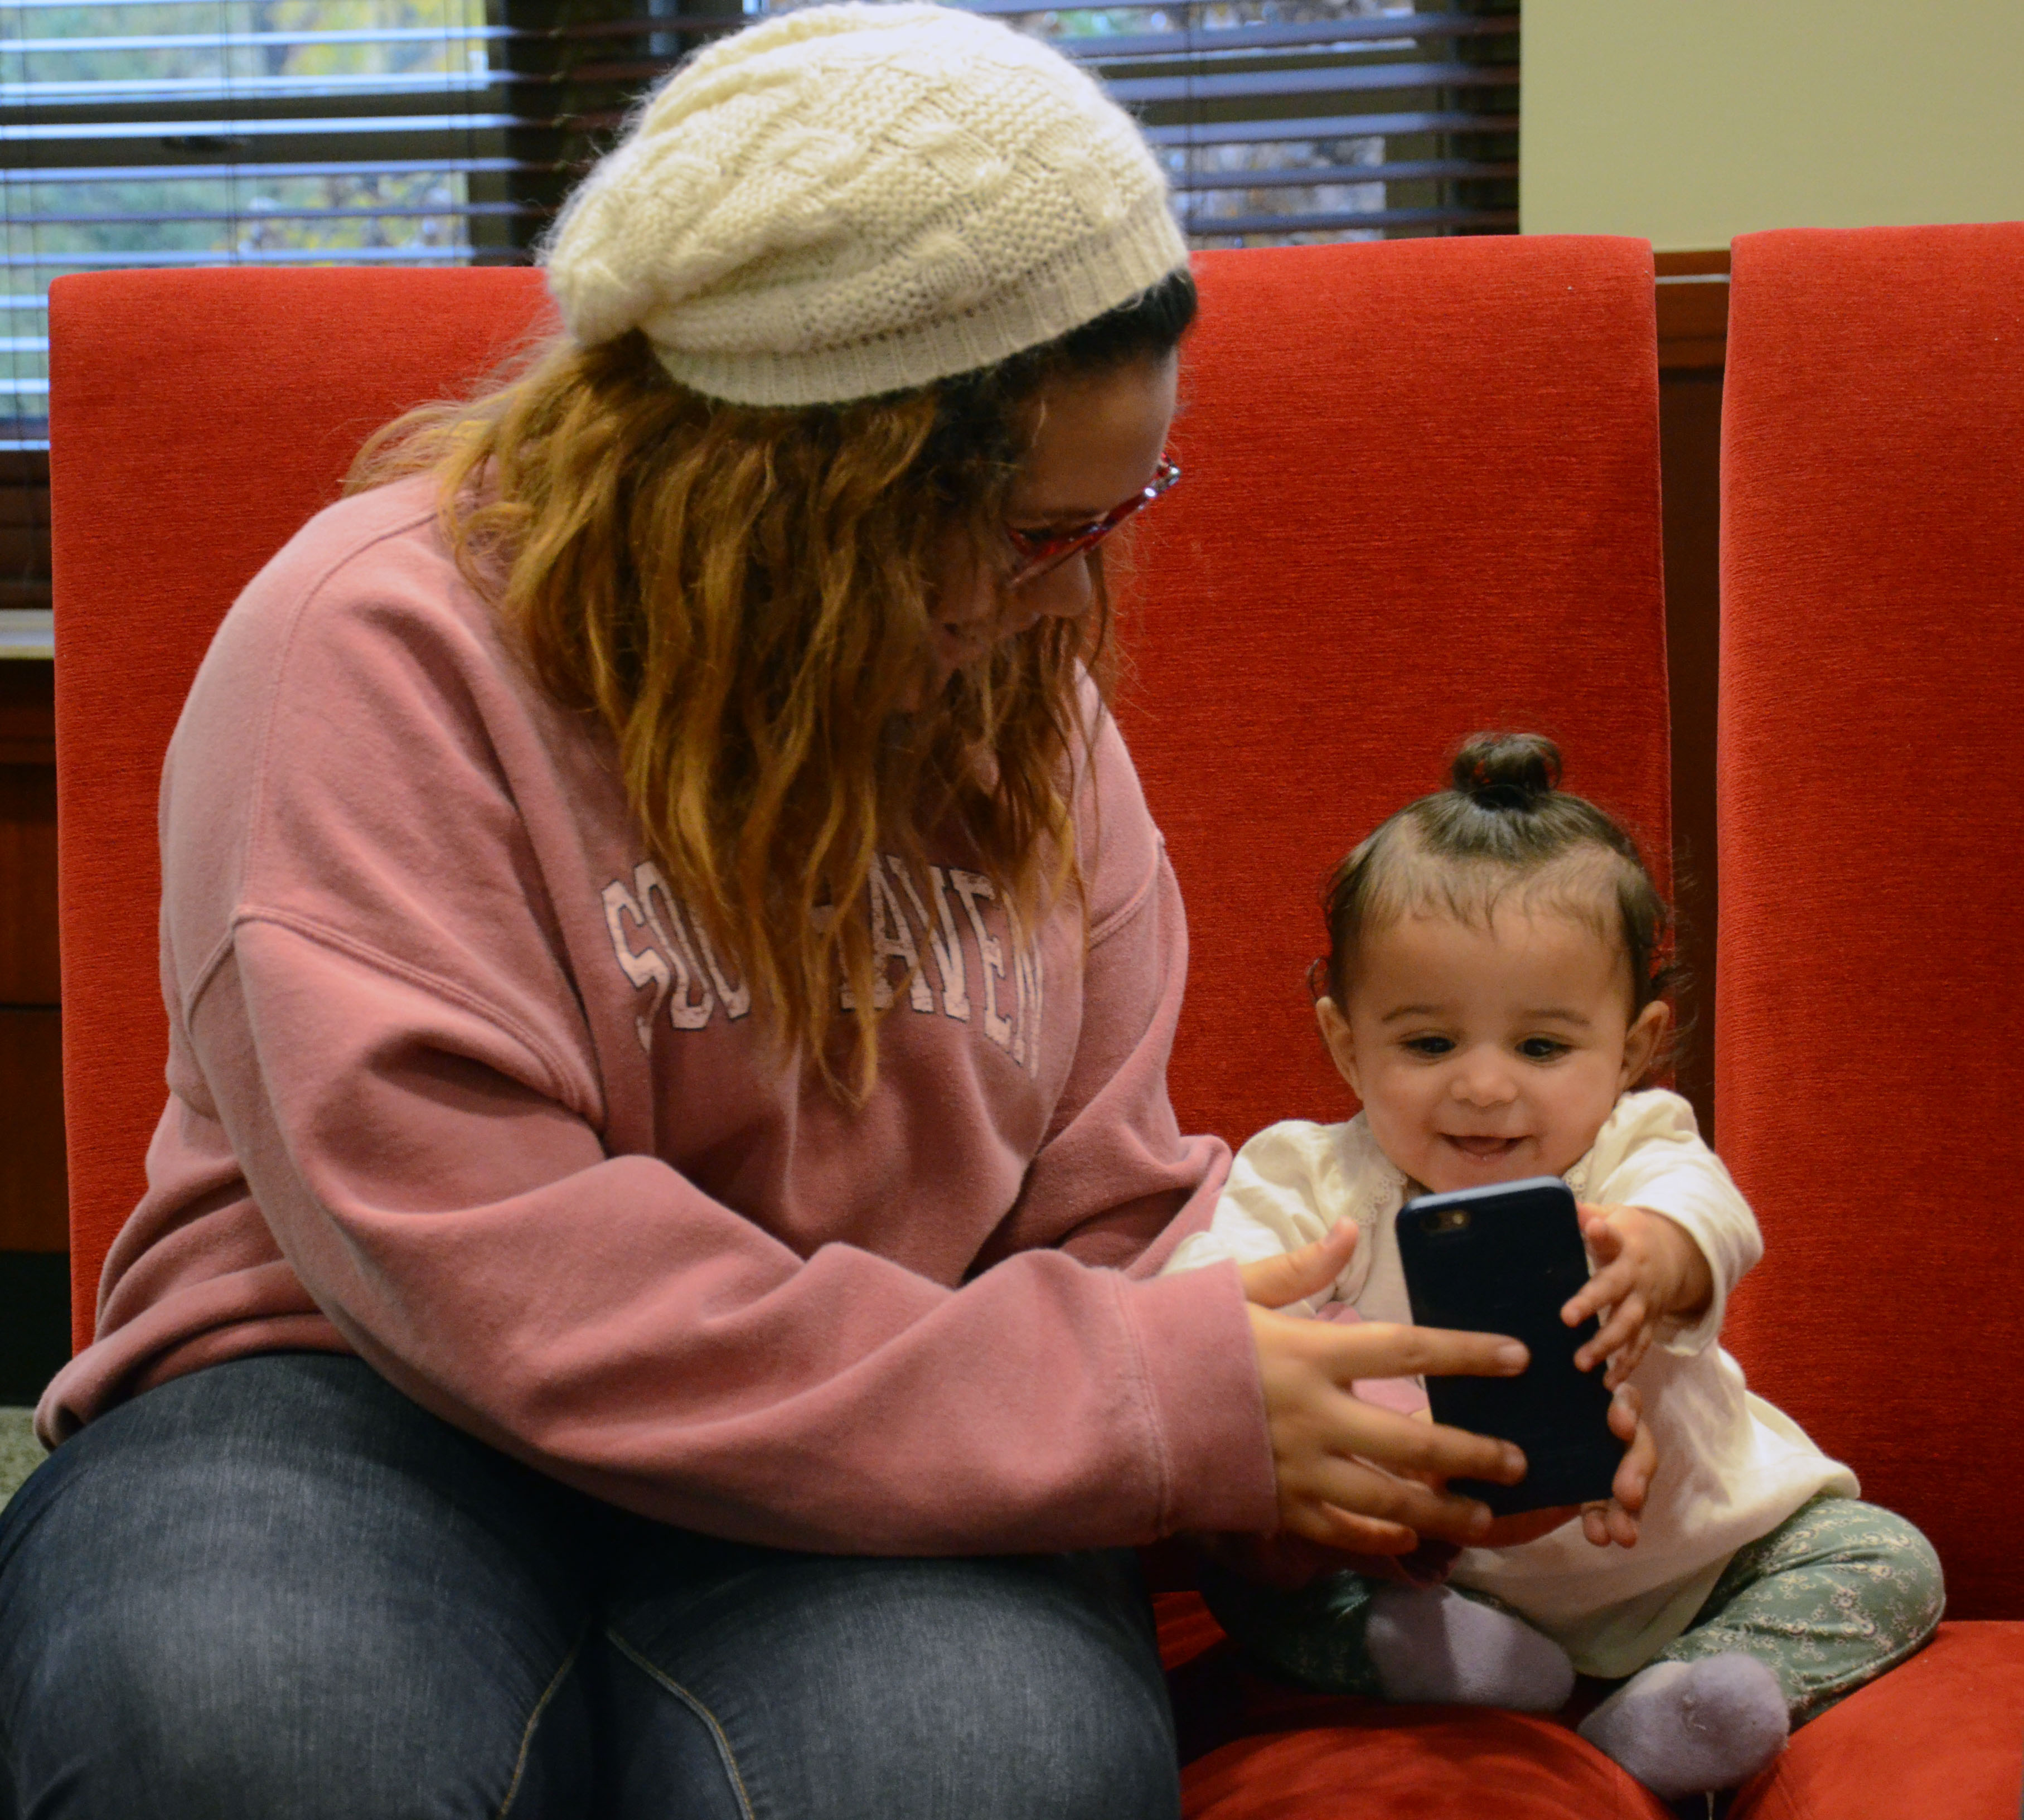 Shaylin and Djvon are not afraid to use technology to educate Charli. As long as it is monitored, these Millennial parents believe that technology will help them become better parents.